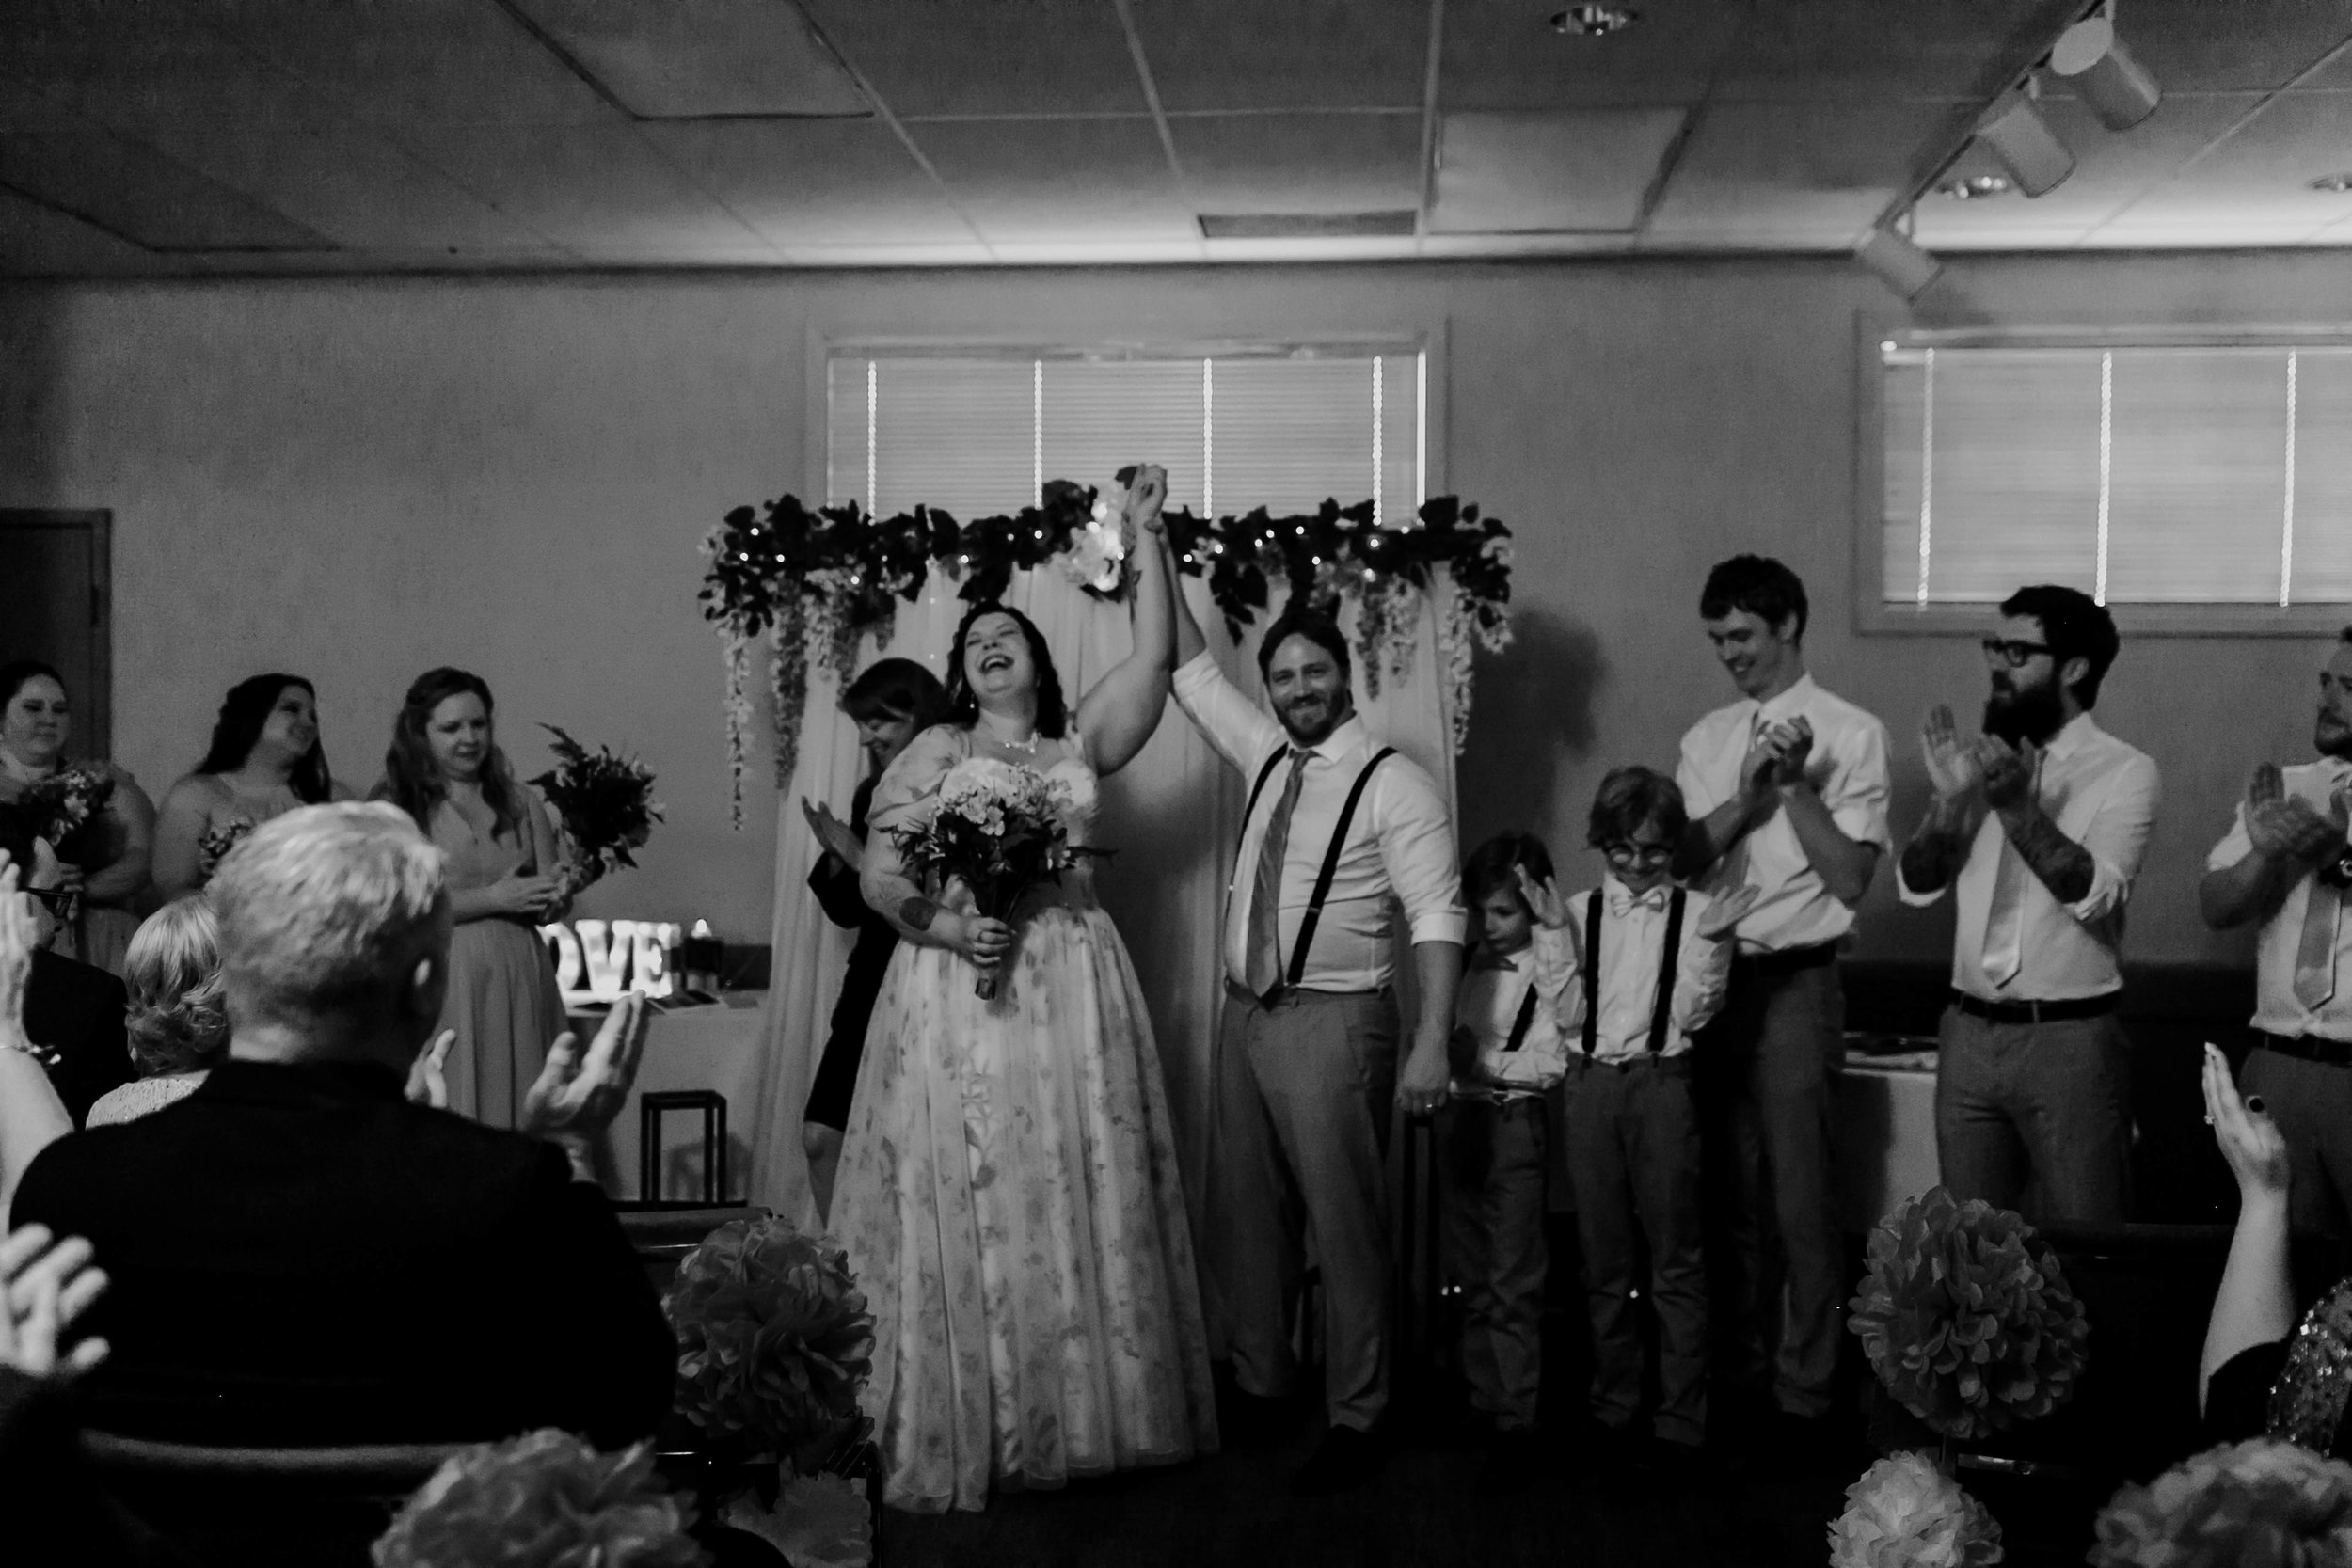 CrystalJessuppeterboroughwedding (35 of 79).jpg